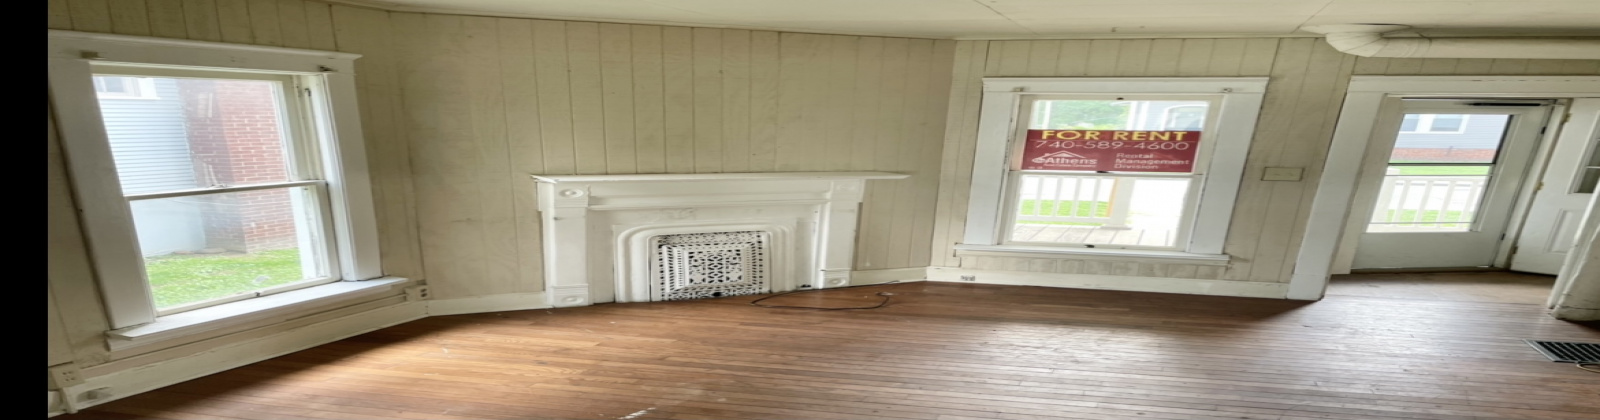 5 Palmer Street APT A Athens, Ohio, 4 Bedrooms Bedrooms, ,1 BathroomBathrooms,Apartment,For Rent,Palmer,1017